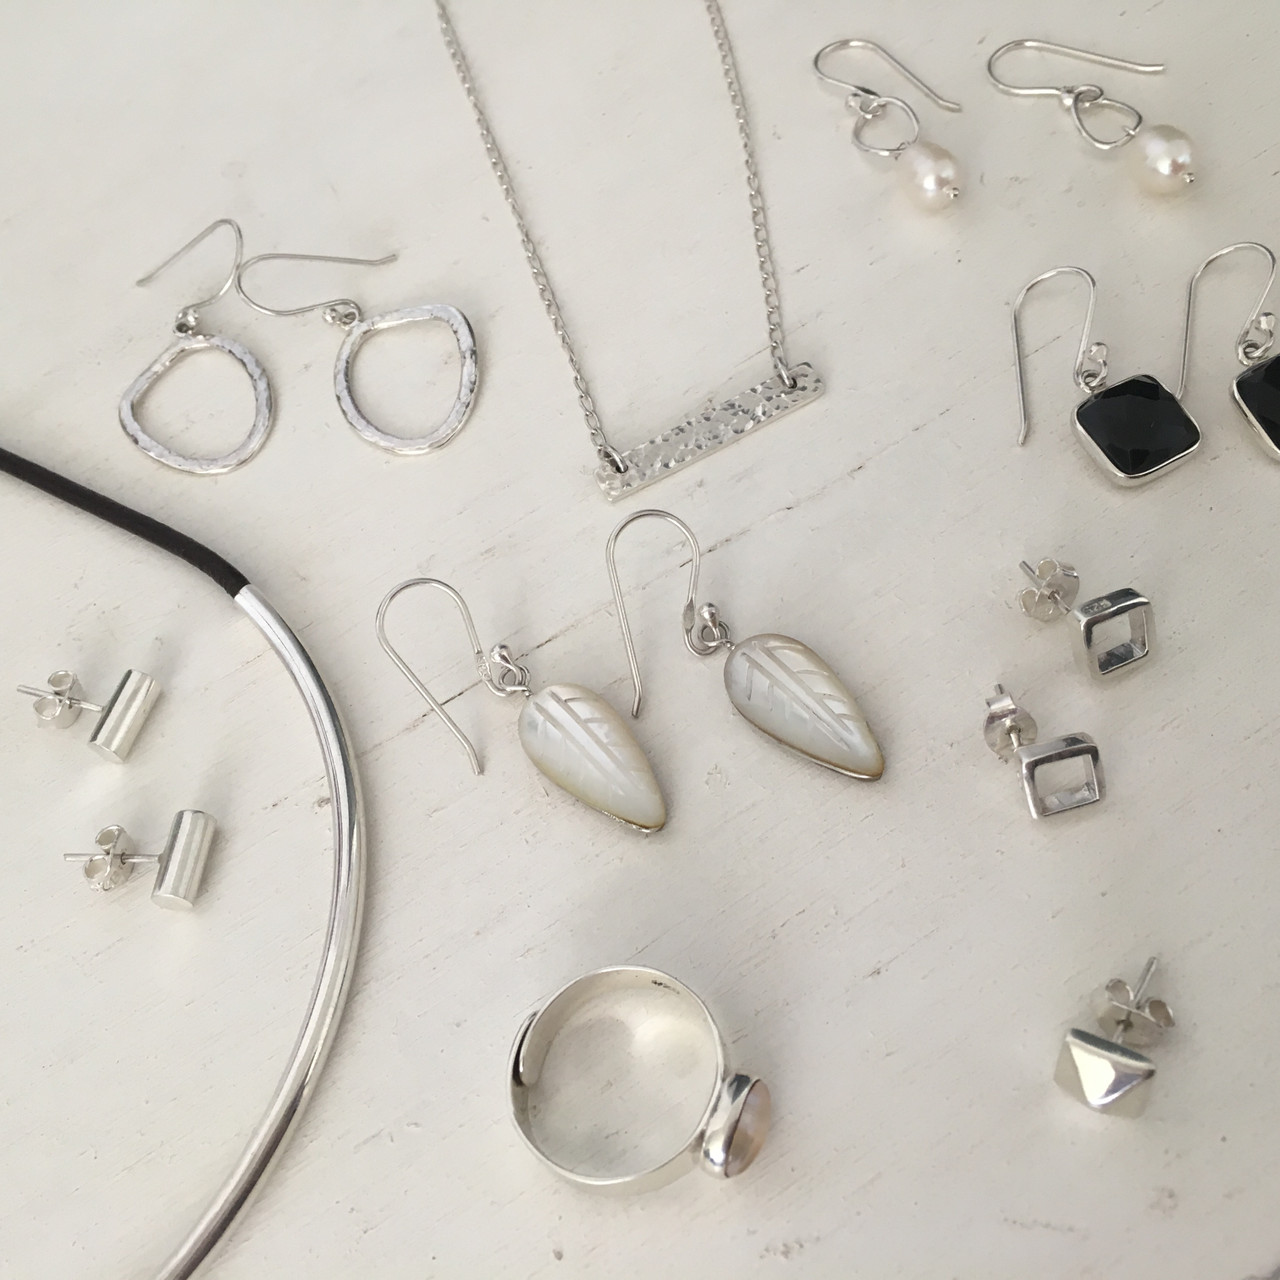 How to take care of your jewelry: make it last, make it sustainable